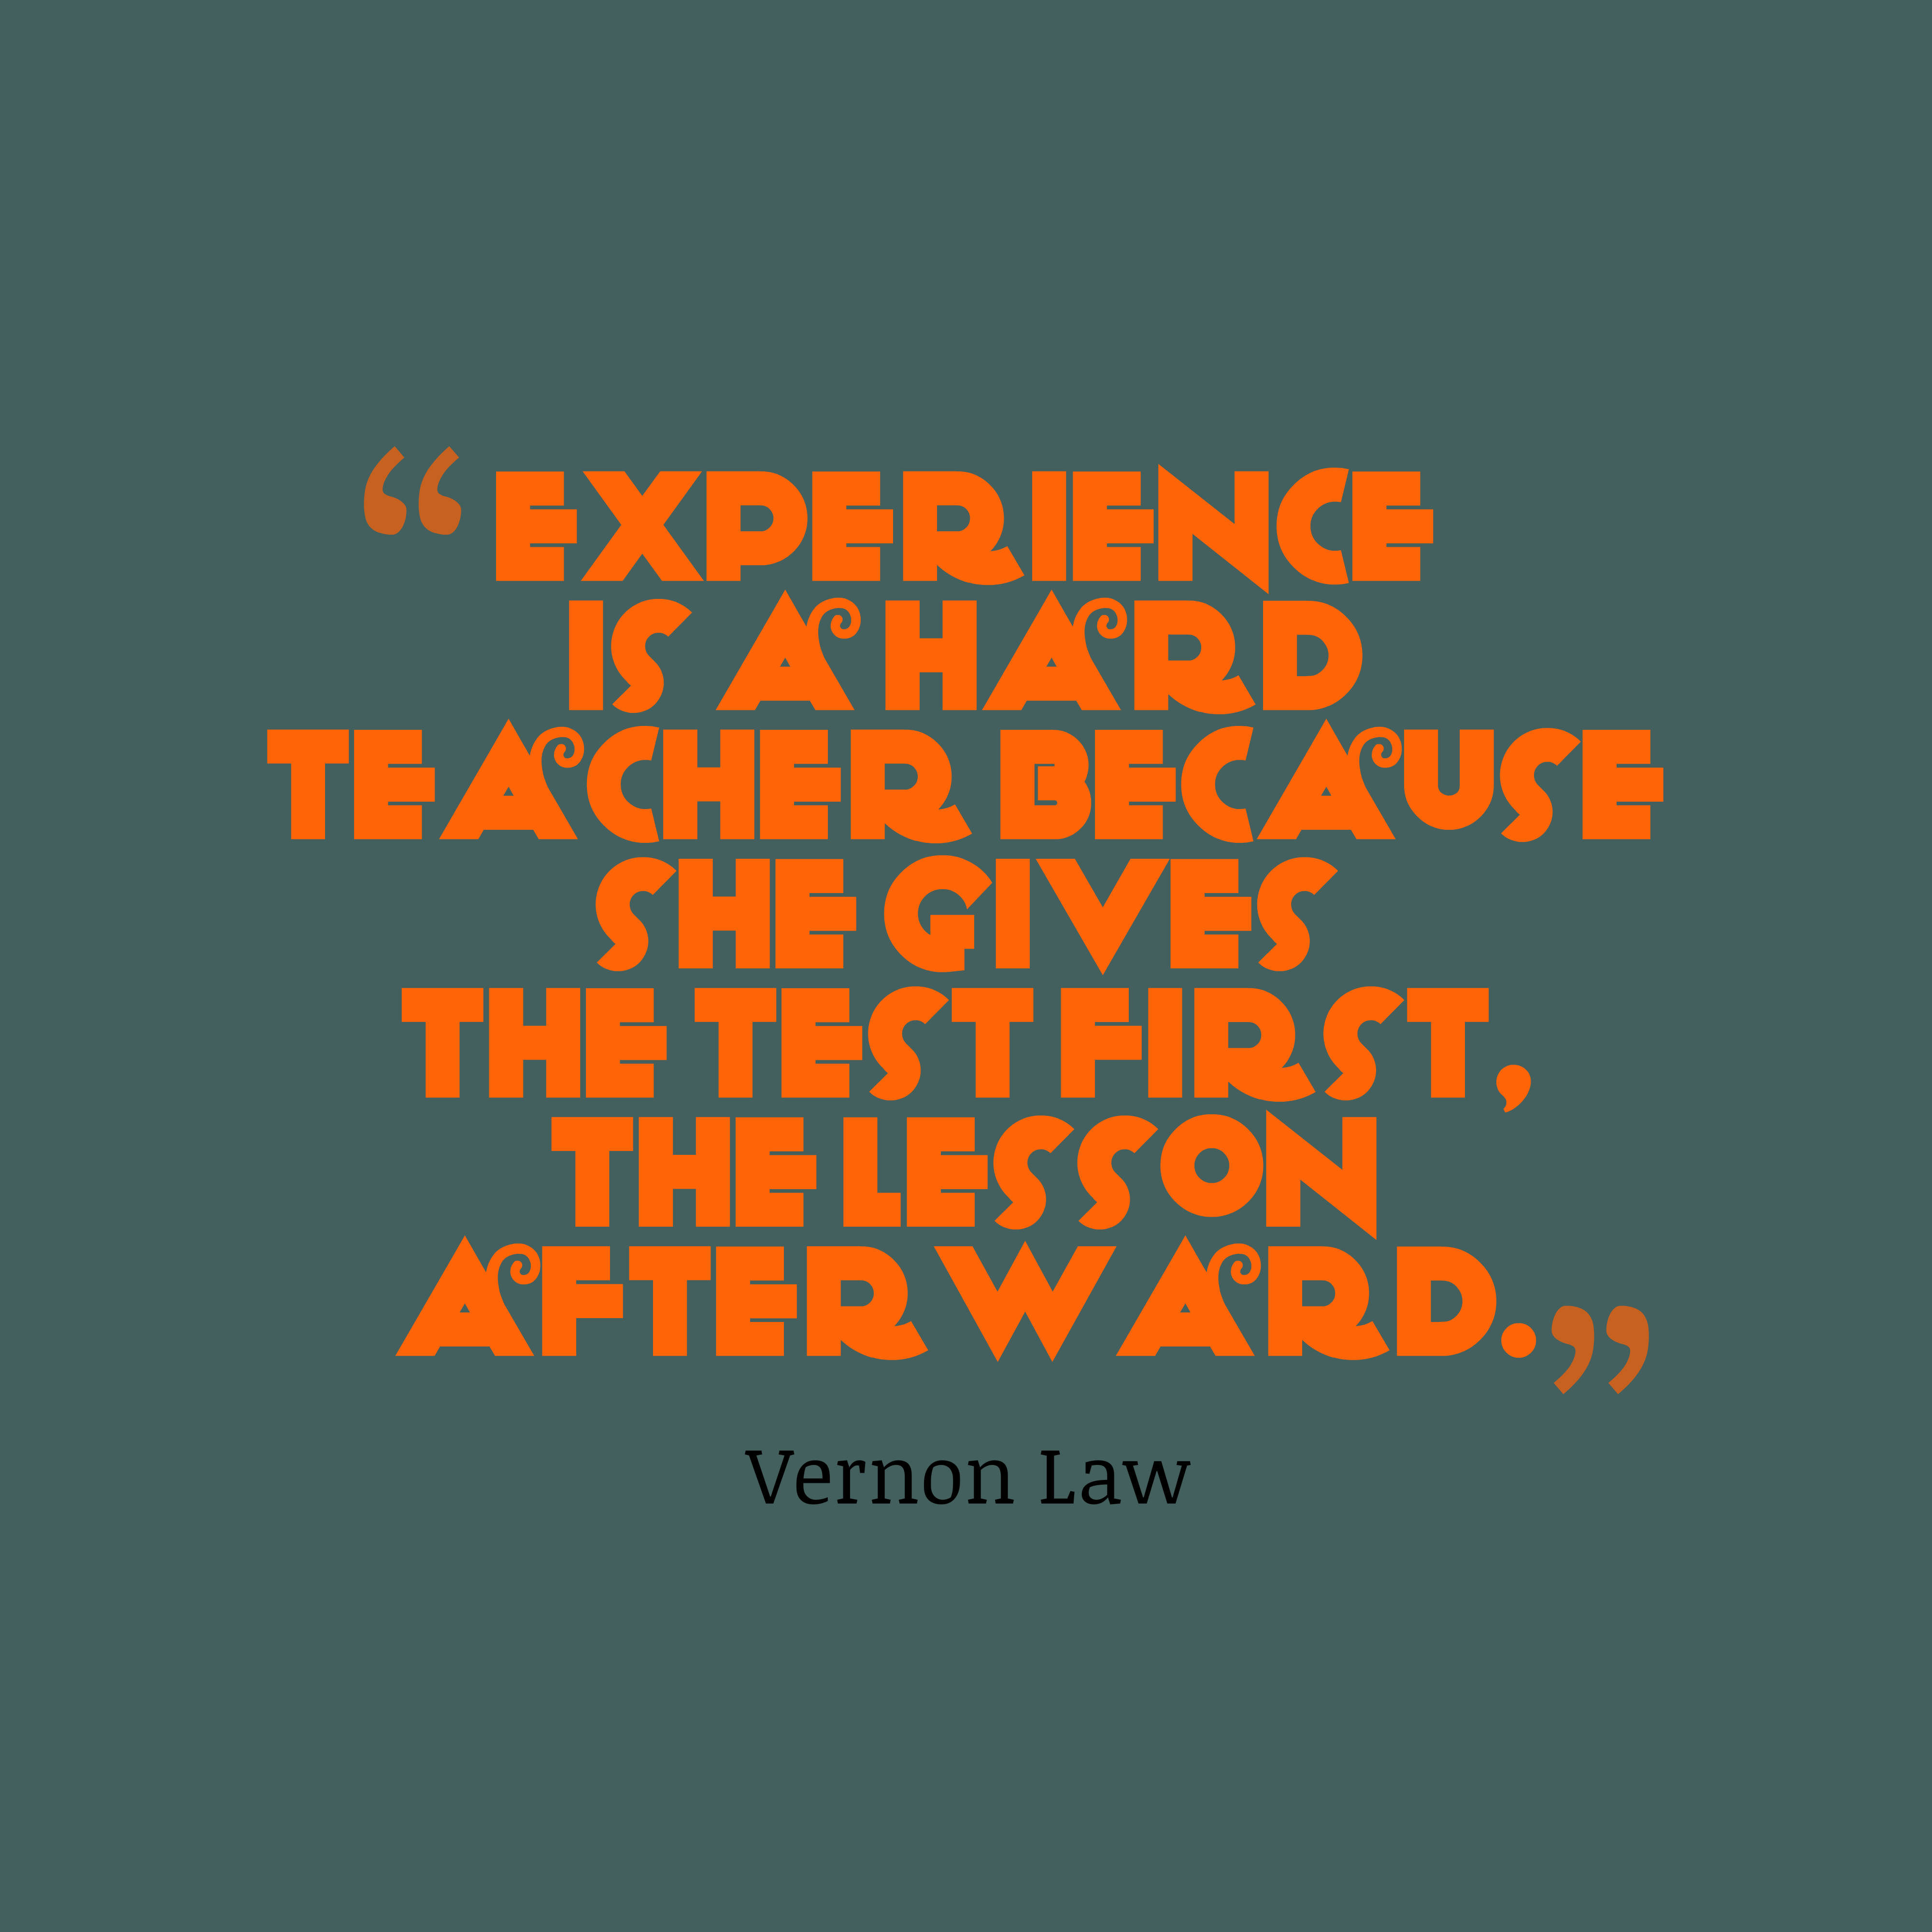 Quotes image of Experience is a hard teacher because she gives the test first, the lesson afterward.